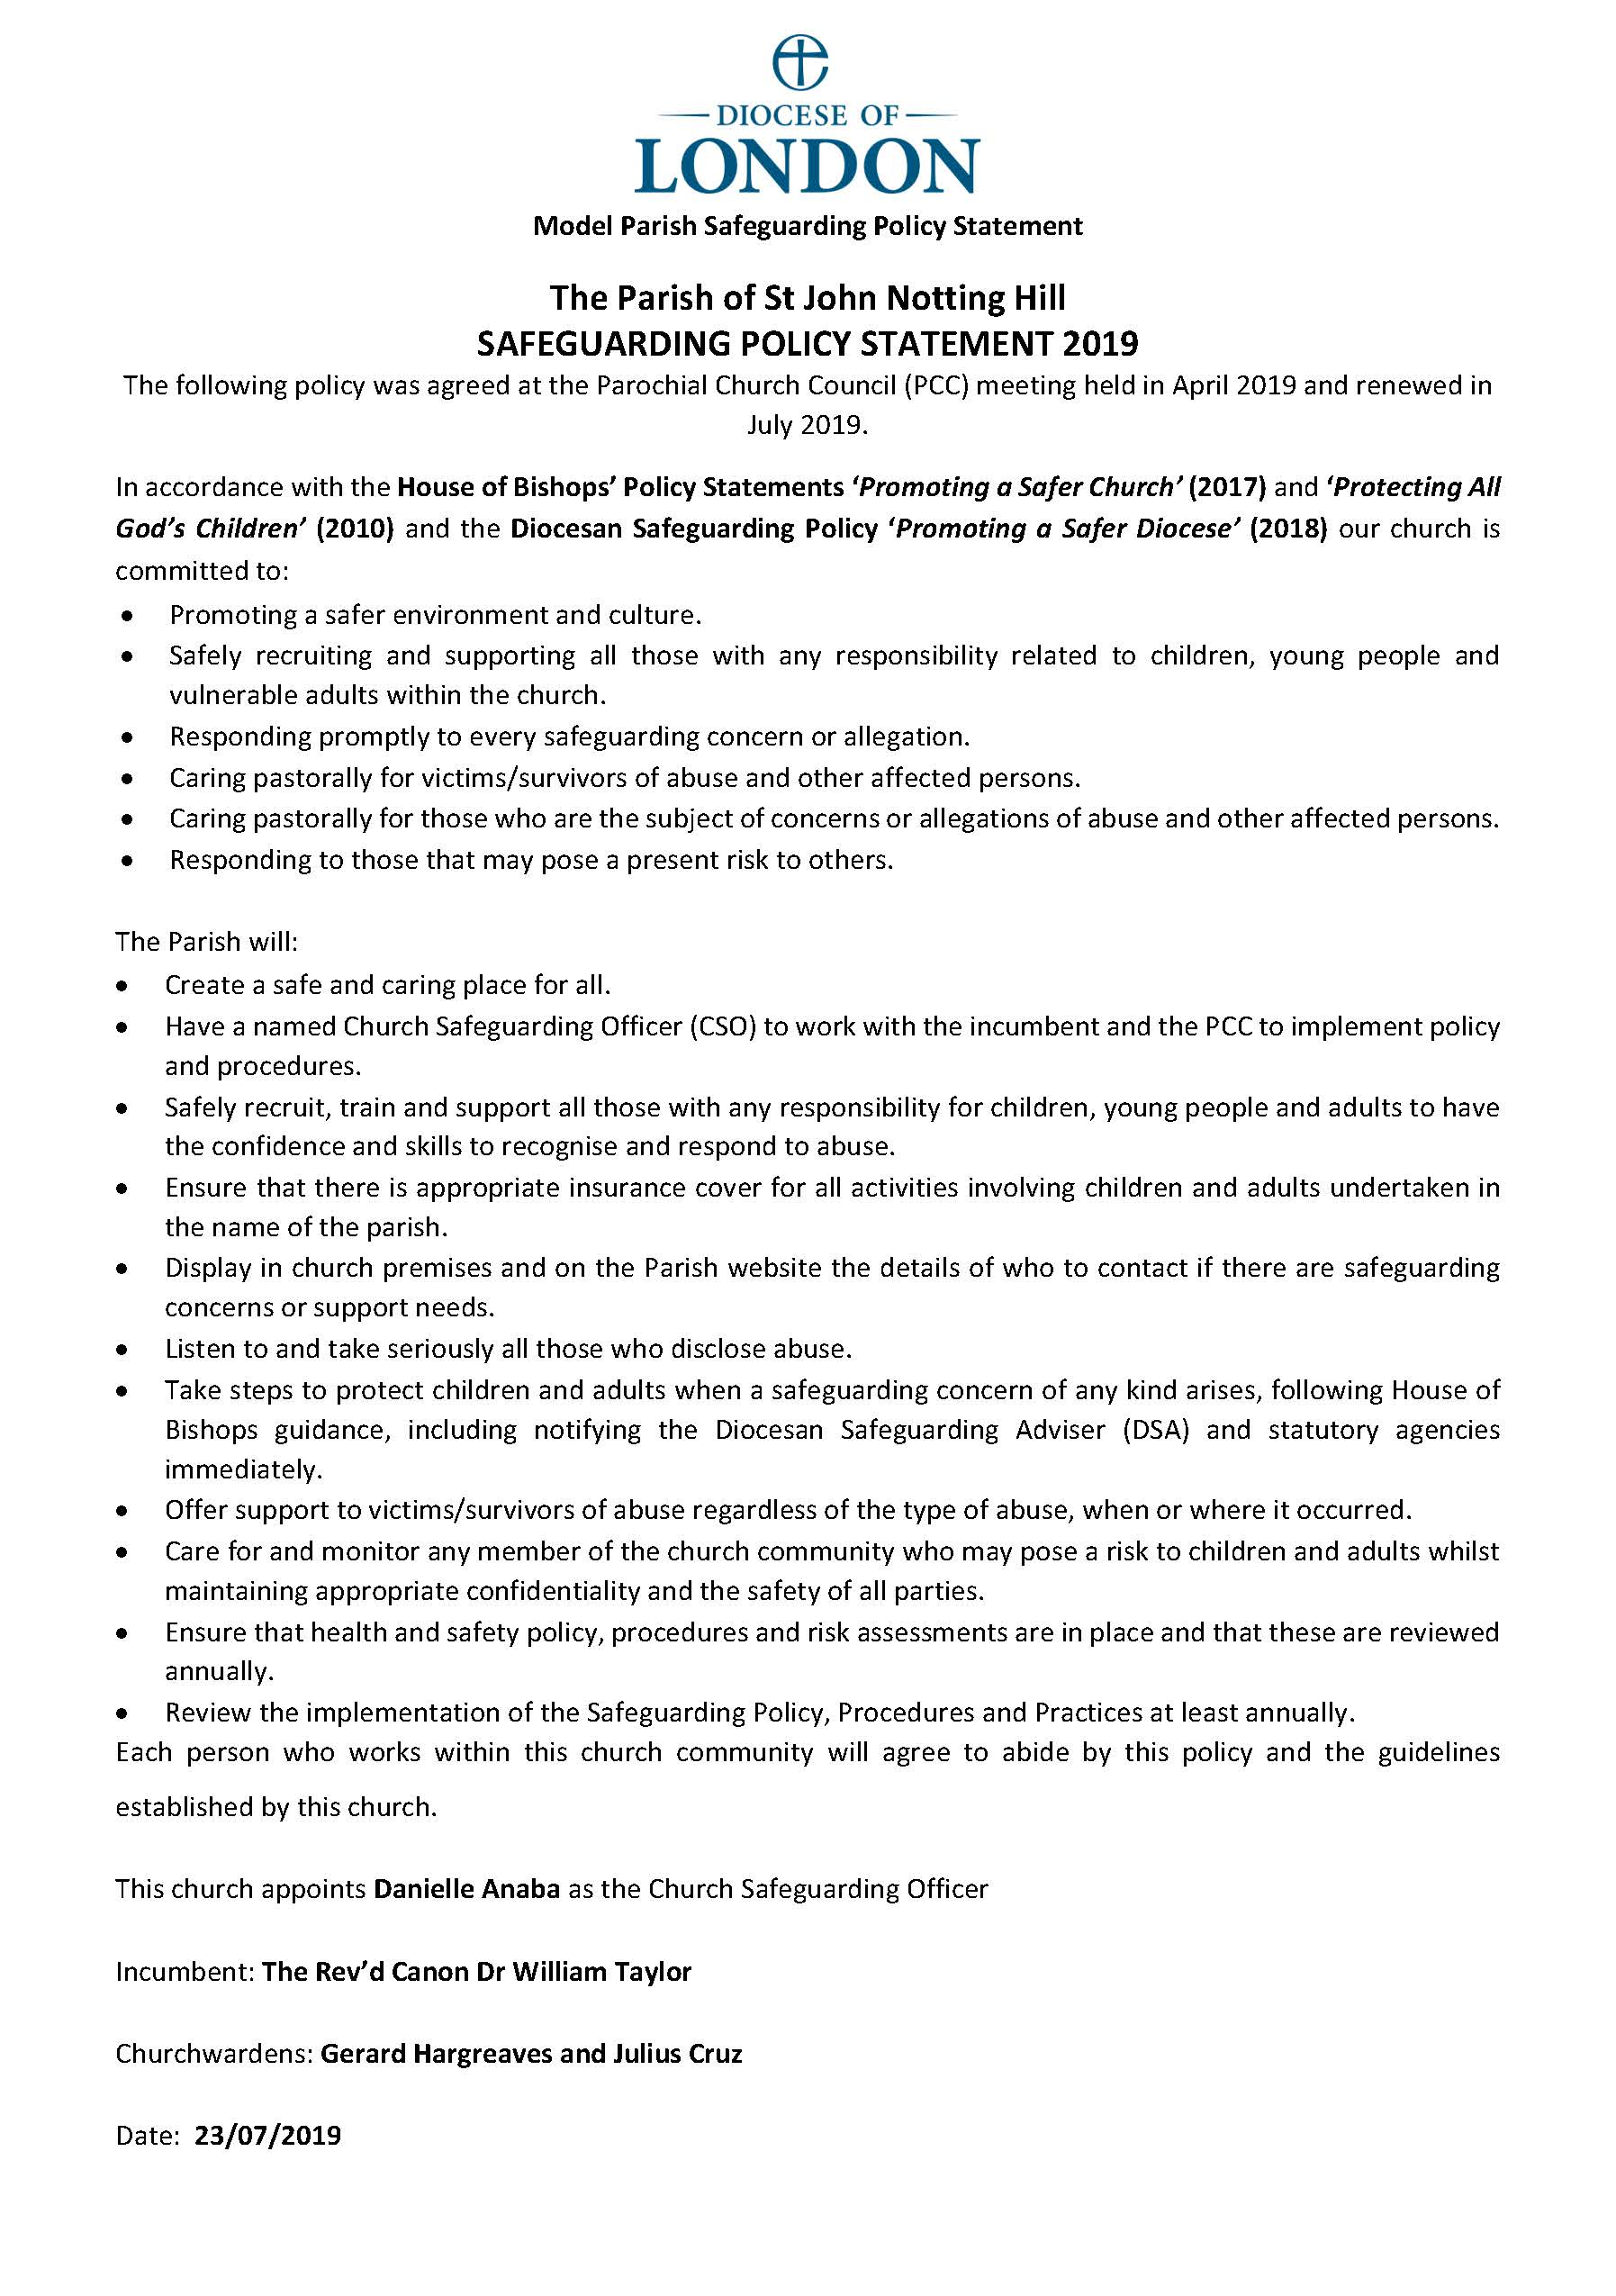 Model-Parish-Safeguarding-Policy-Statement-May-2019-FINAL-1 (1).jpg